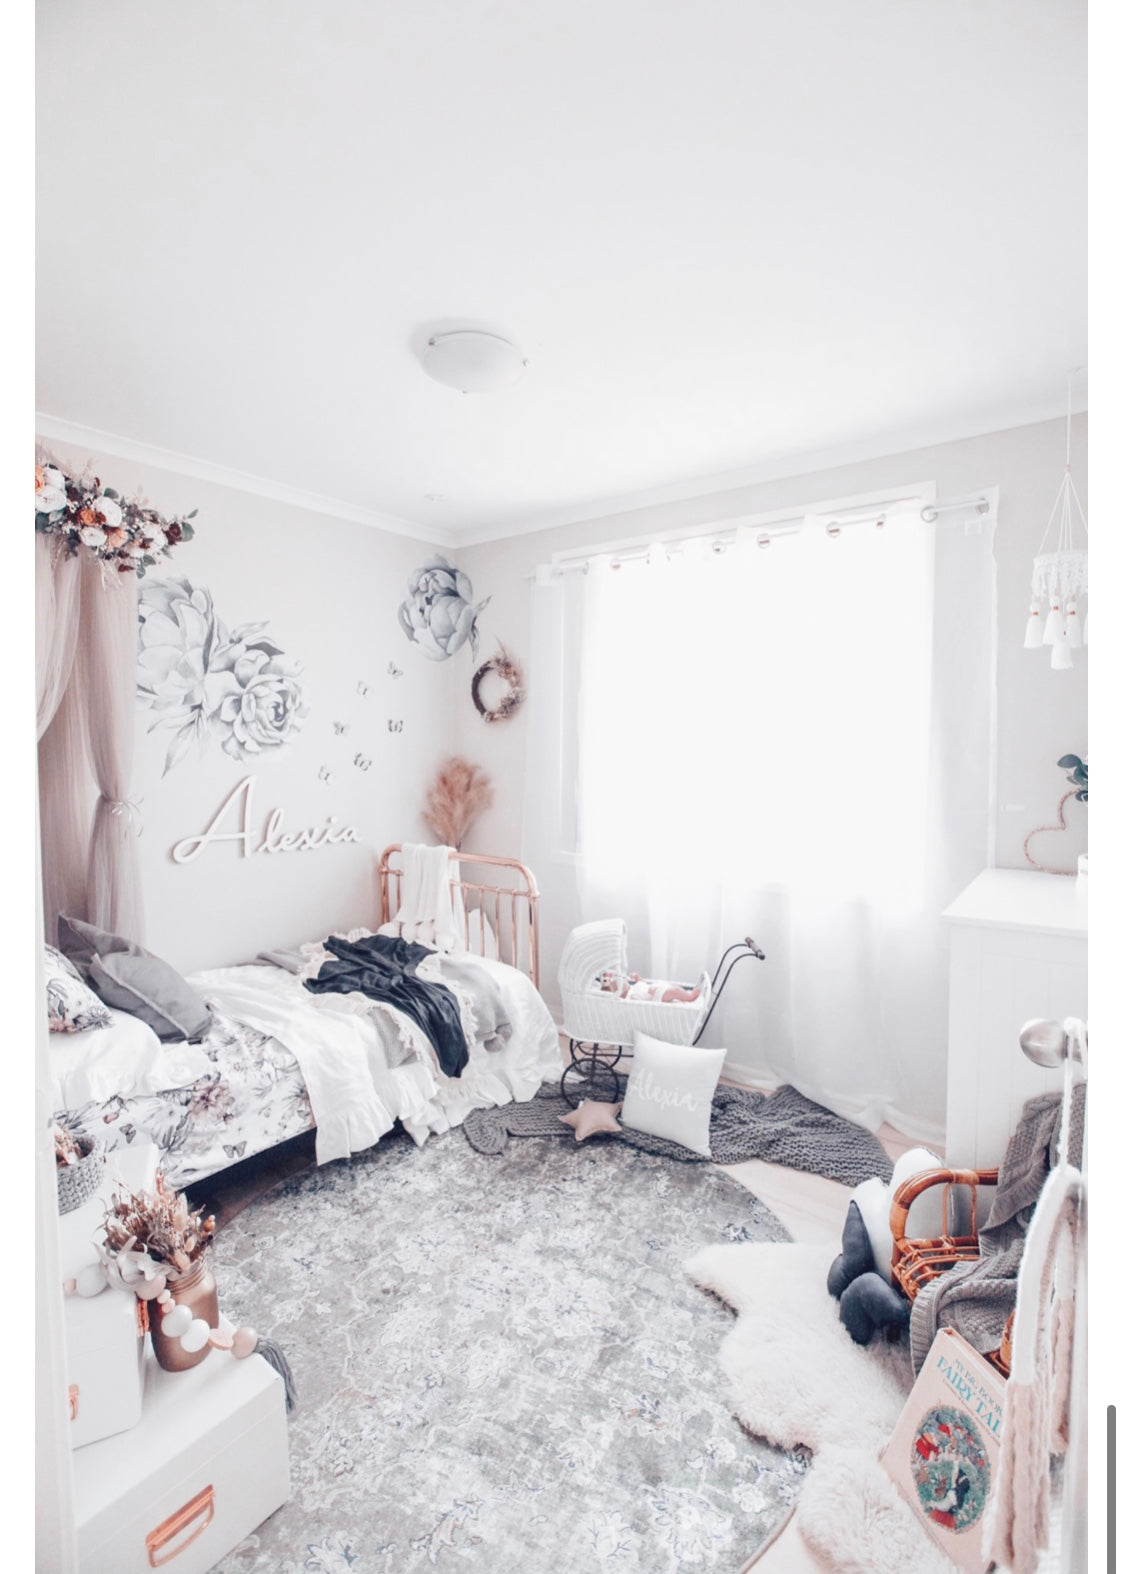 Create Your Own Dreamy Space! Written by @thehhouse_